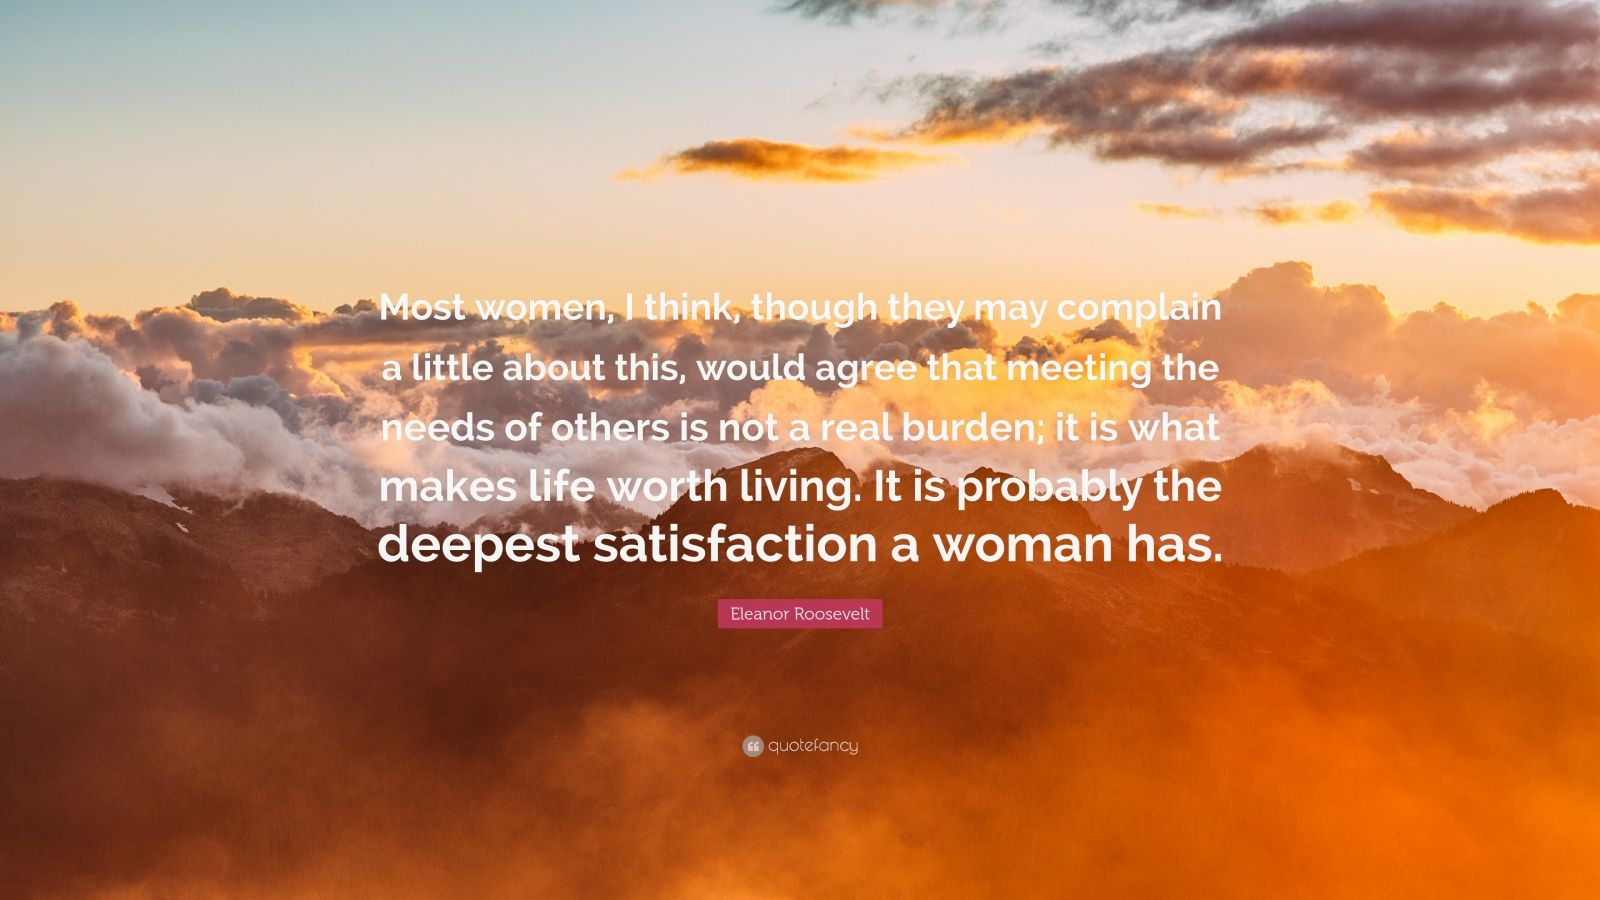 """Eleanor Roosevelt Quote: """"Most women, I think, though they may complain a little about this, would agree that meeting the needs of others is not a real burden; it is what makes life worth living. It is probably the deepest satisfaction a woman has."""""""